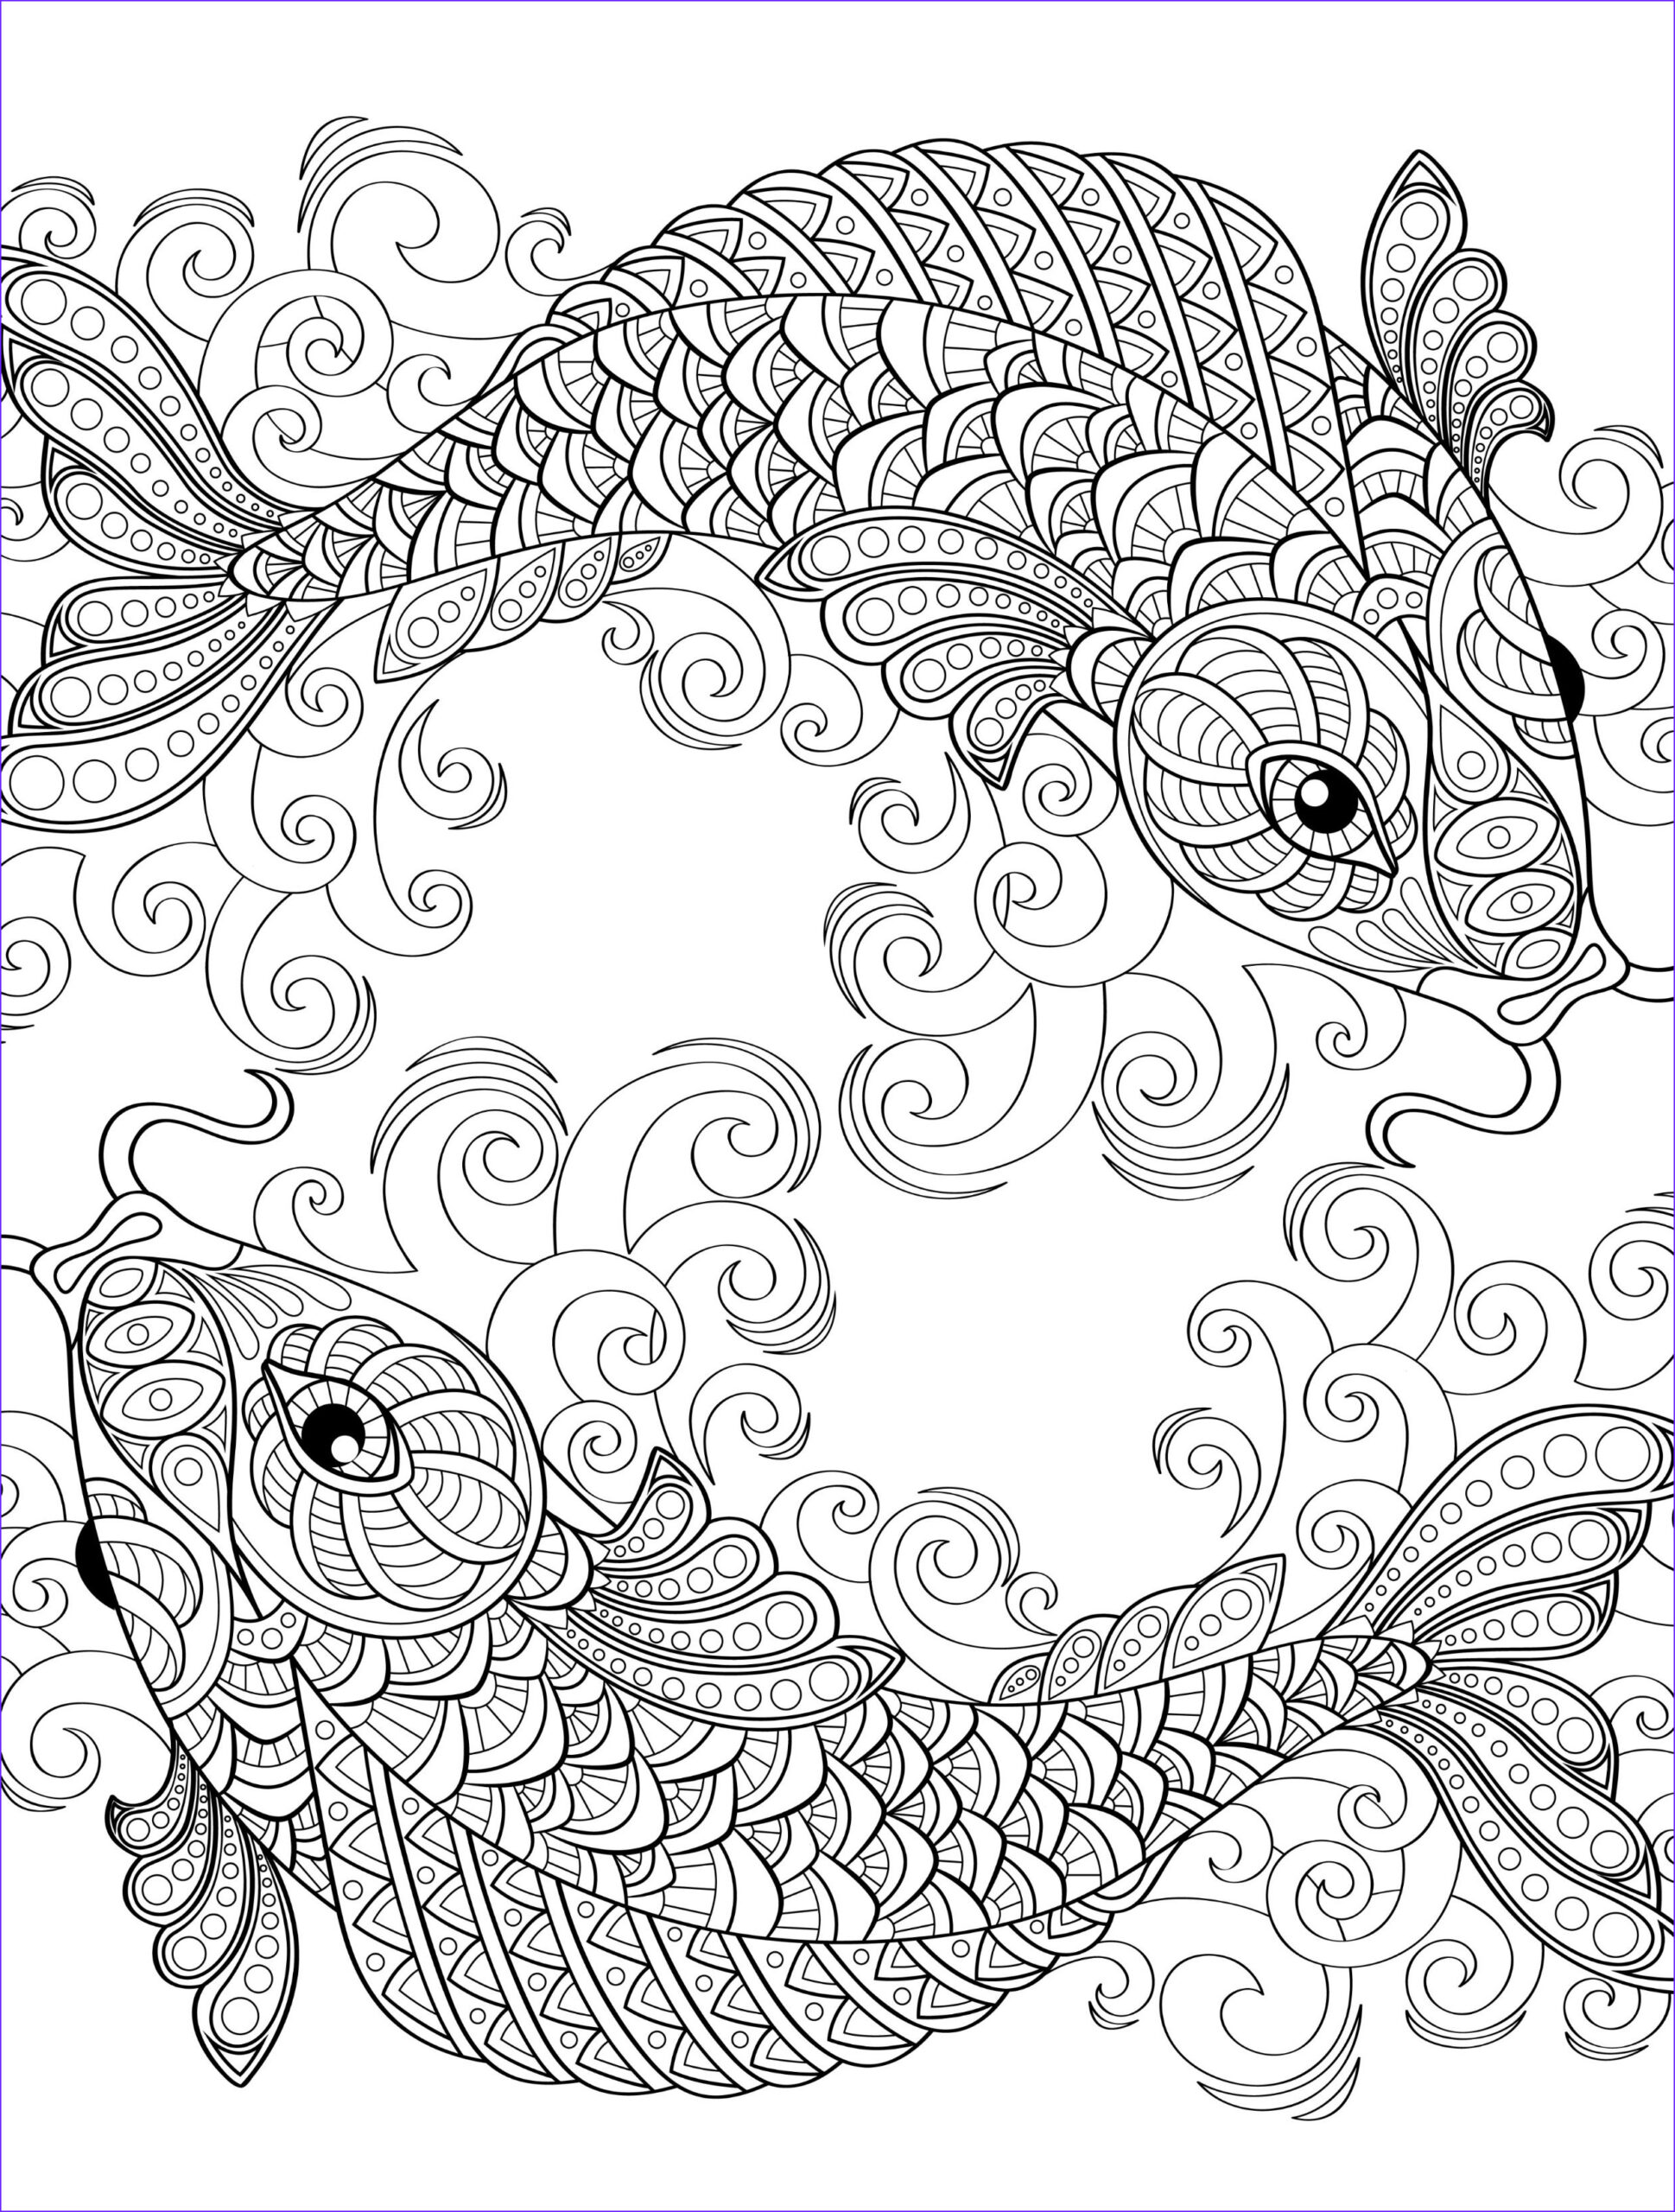 Adult Coloring Pages Free Printable Beautiful Collection Pin On Coloring